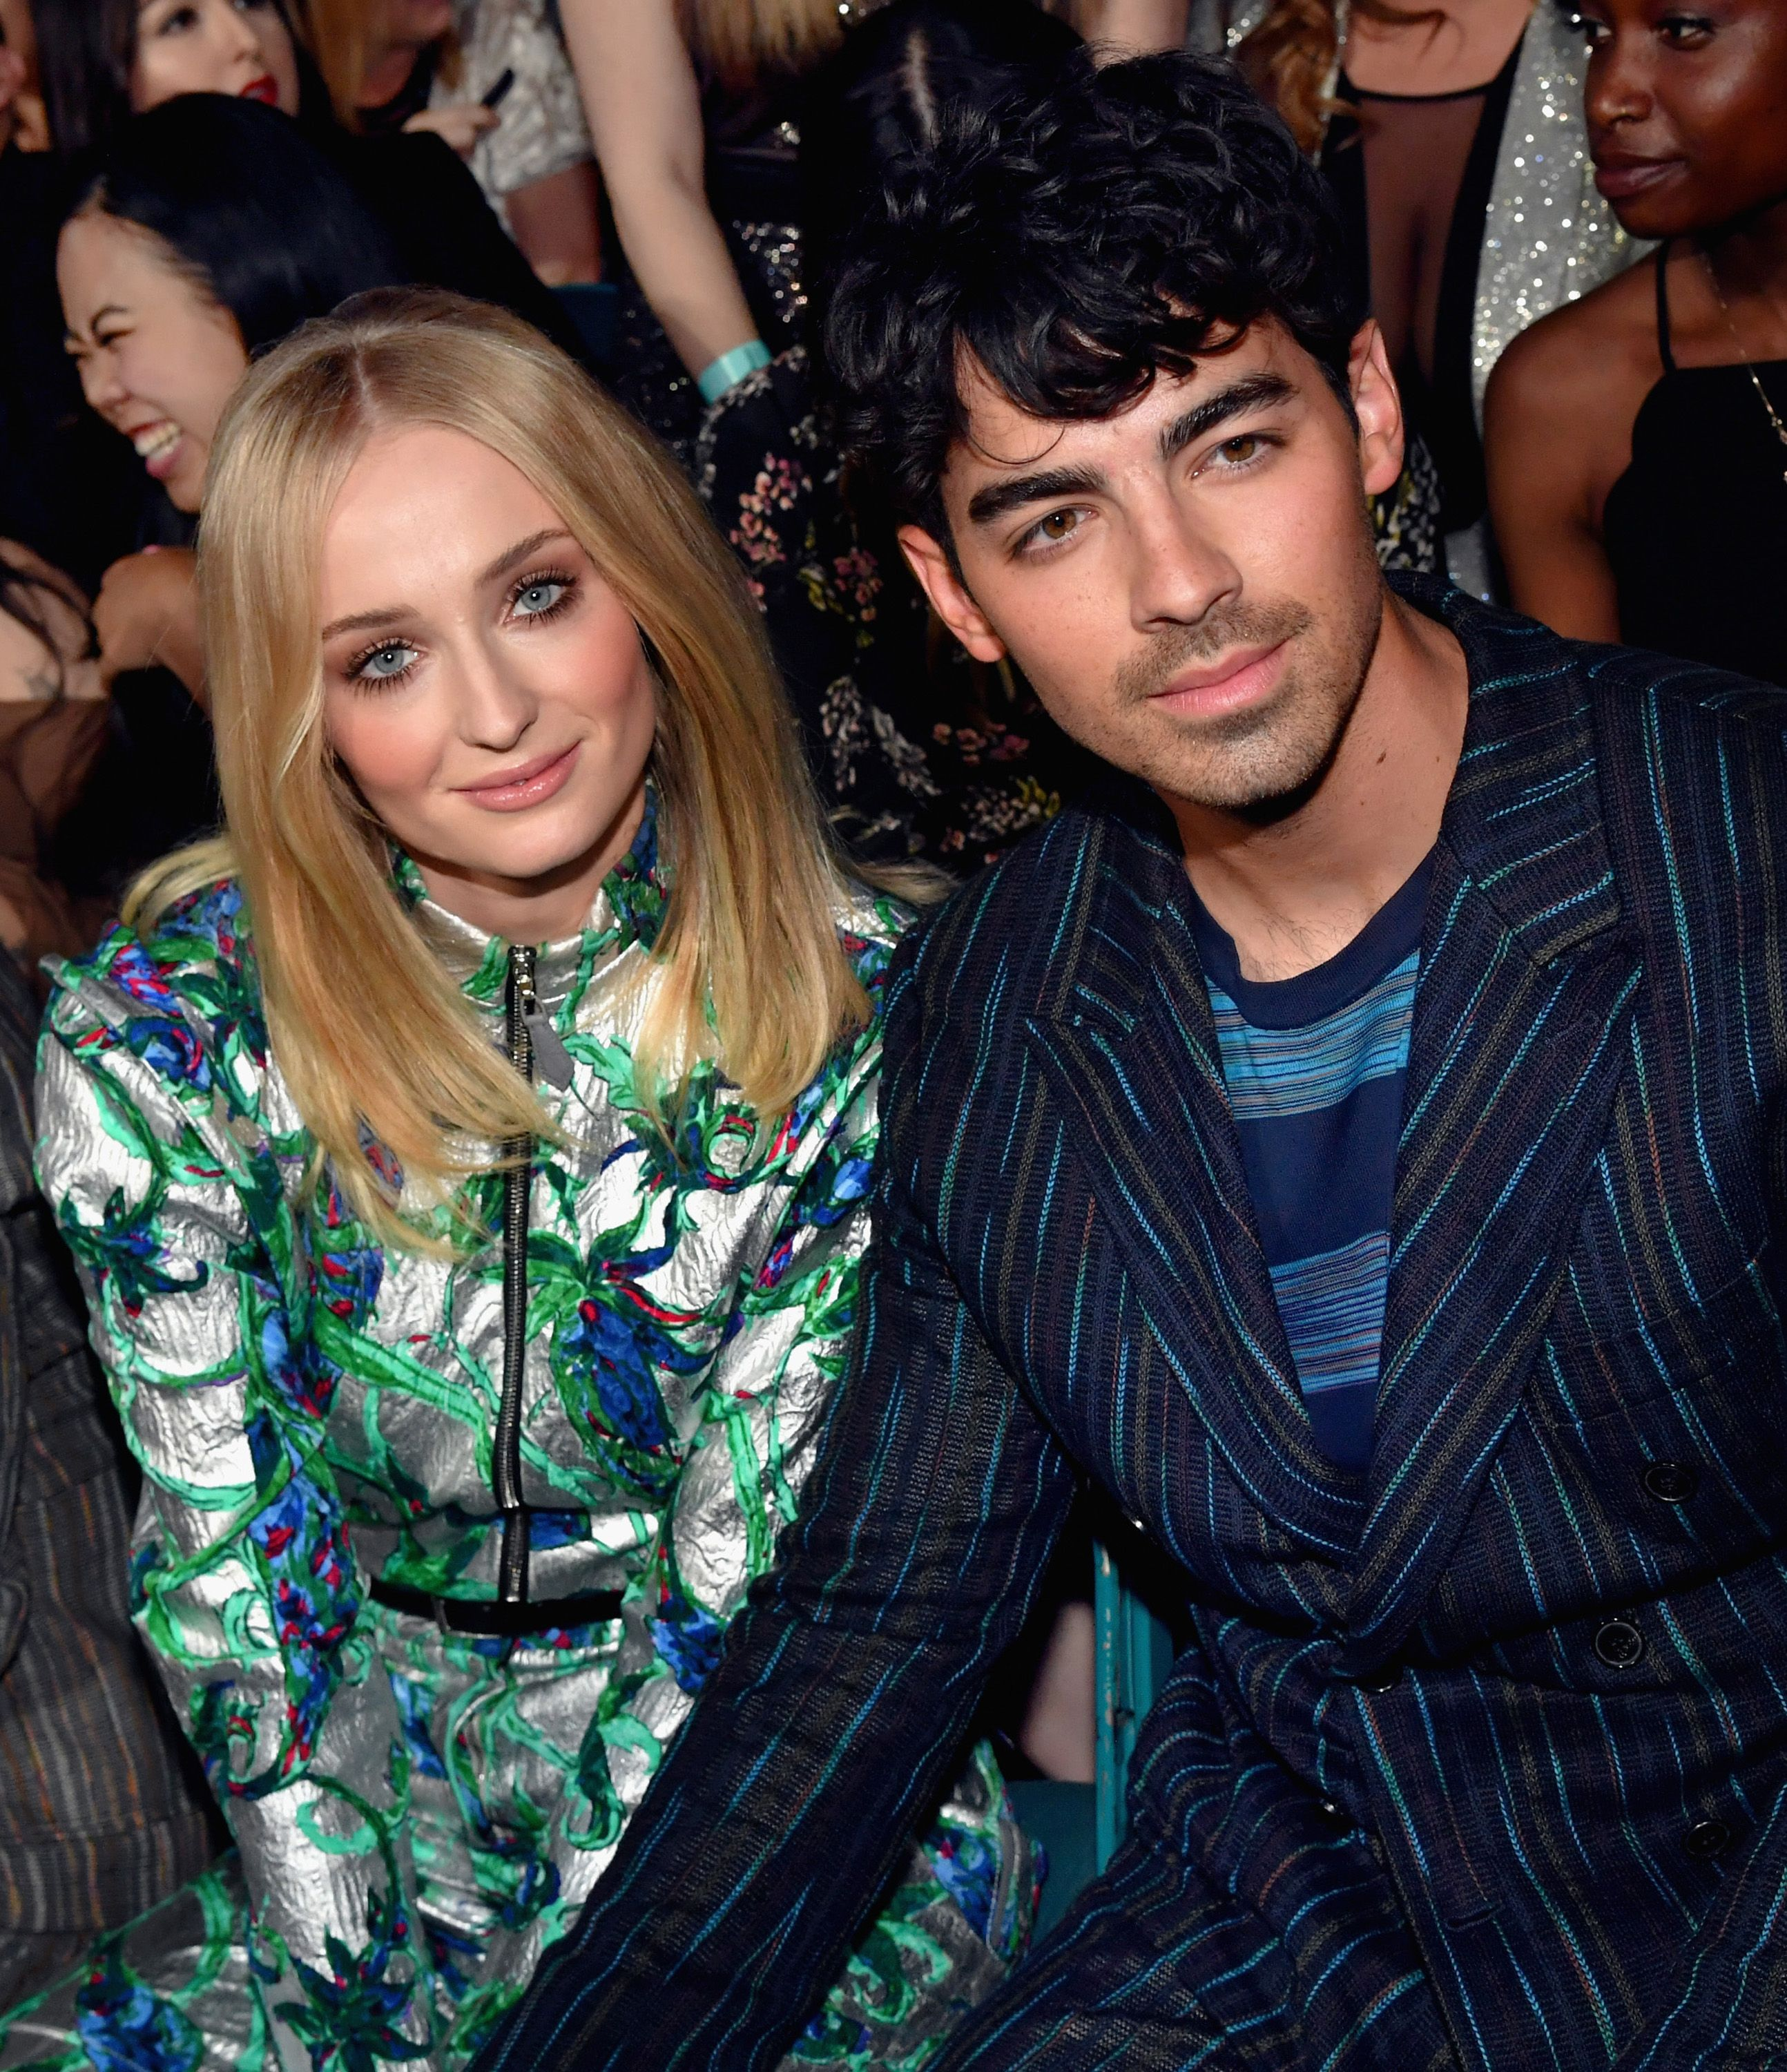 a8890fc953f7 Sophie Turner and Joe Jonas Wedding Guide to Date, Venue and Guest List